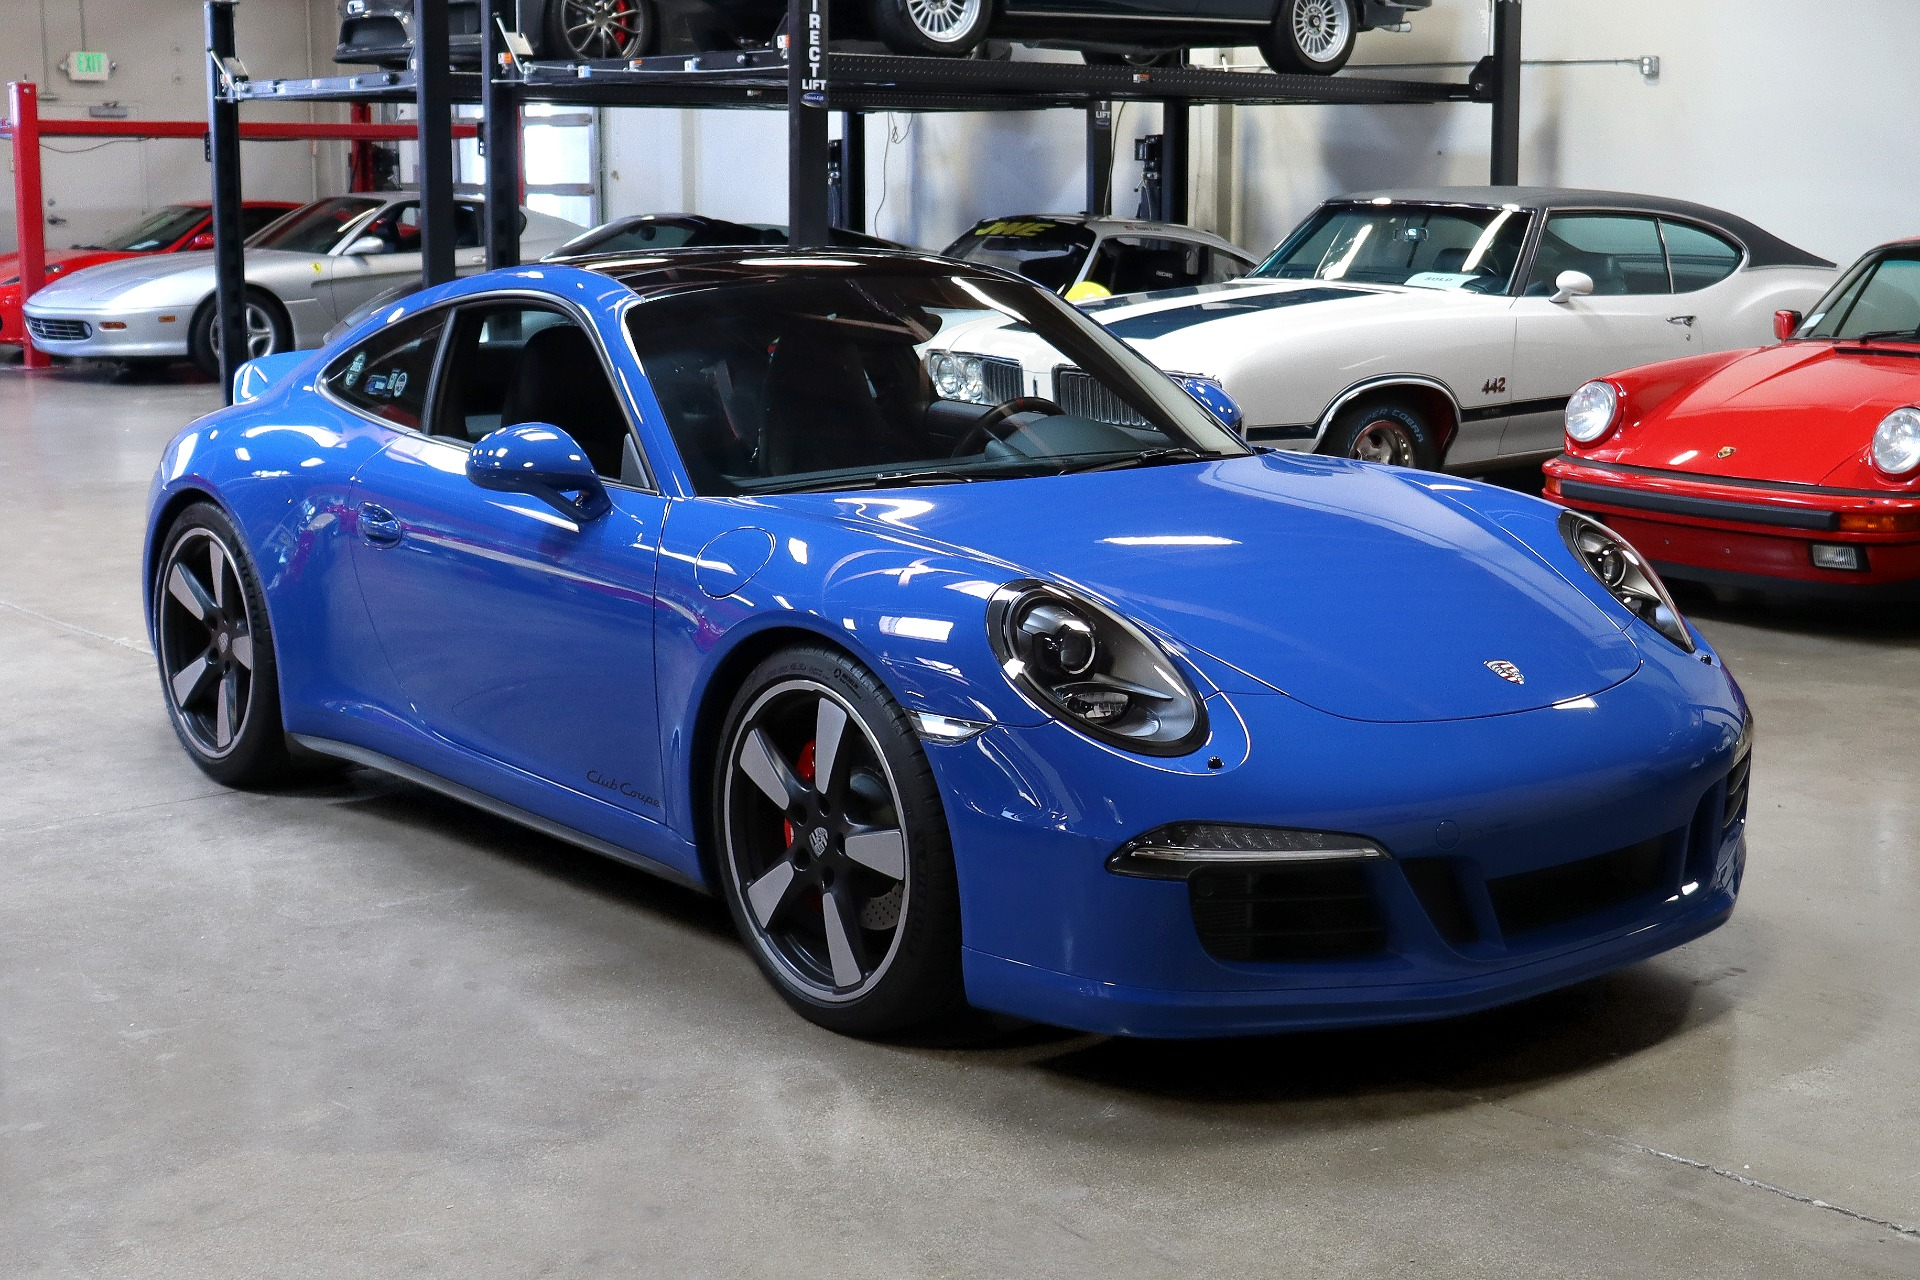 Used 2016 Porsche 911 Carrera GTS Club Coupe for sale $159,995 at San Francisco Sports Cars in San Carlos CA 94070 1